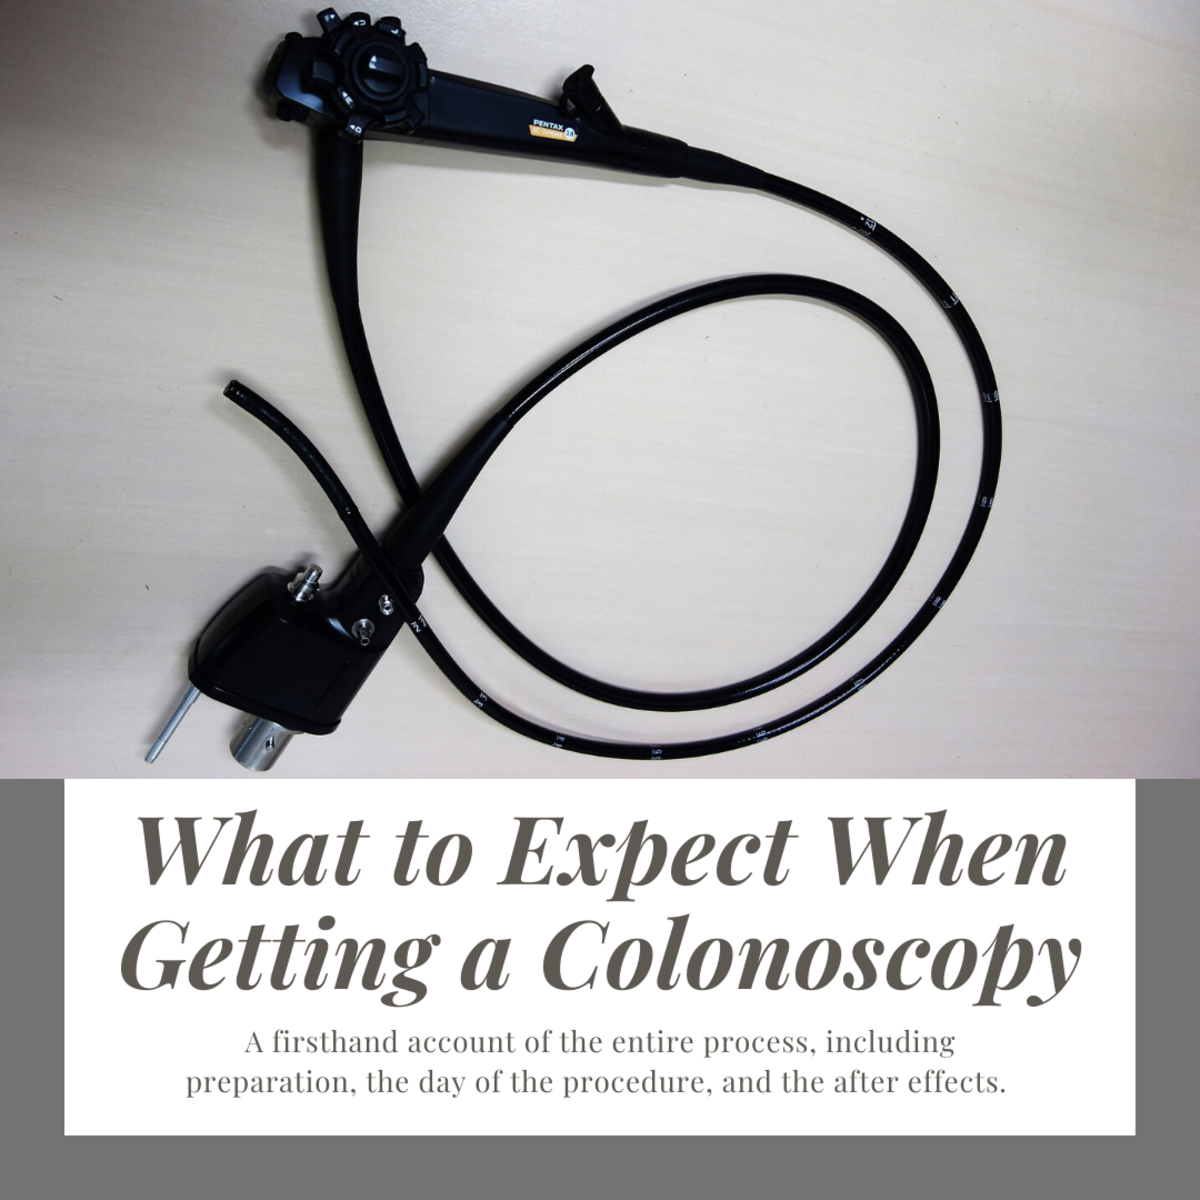 This article will break down my experience with what it was like to get a colonoscopy and will include some information about the preparation process and after effects of the procedure.